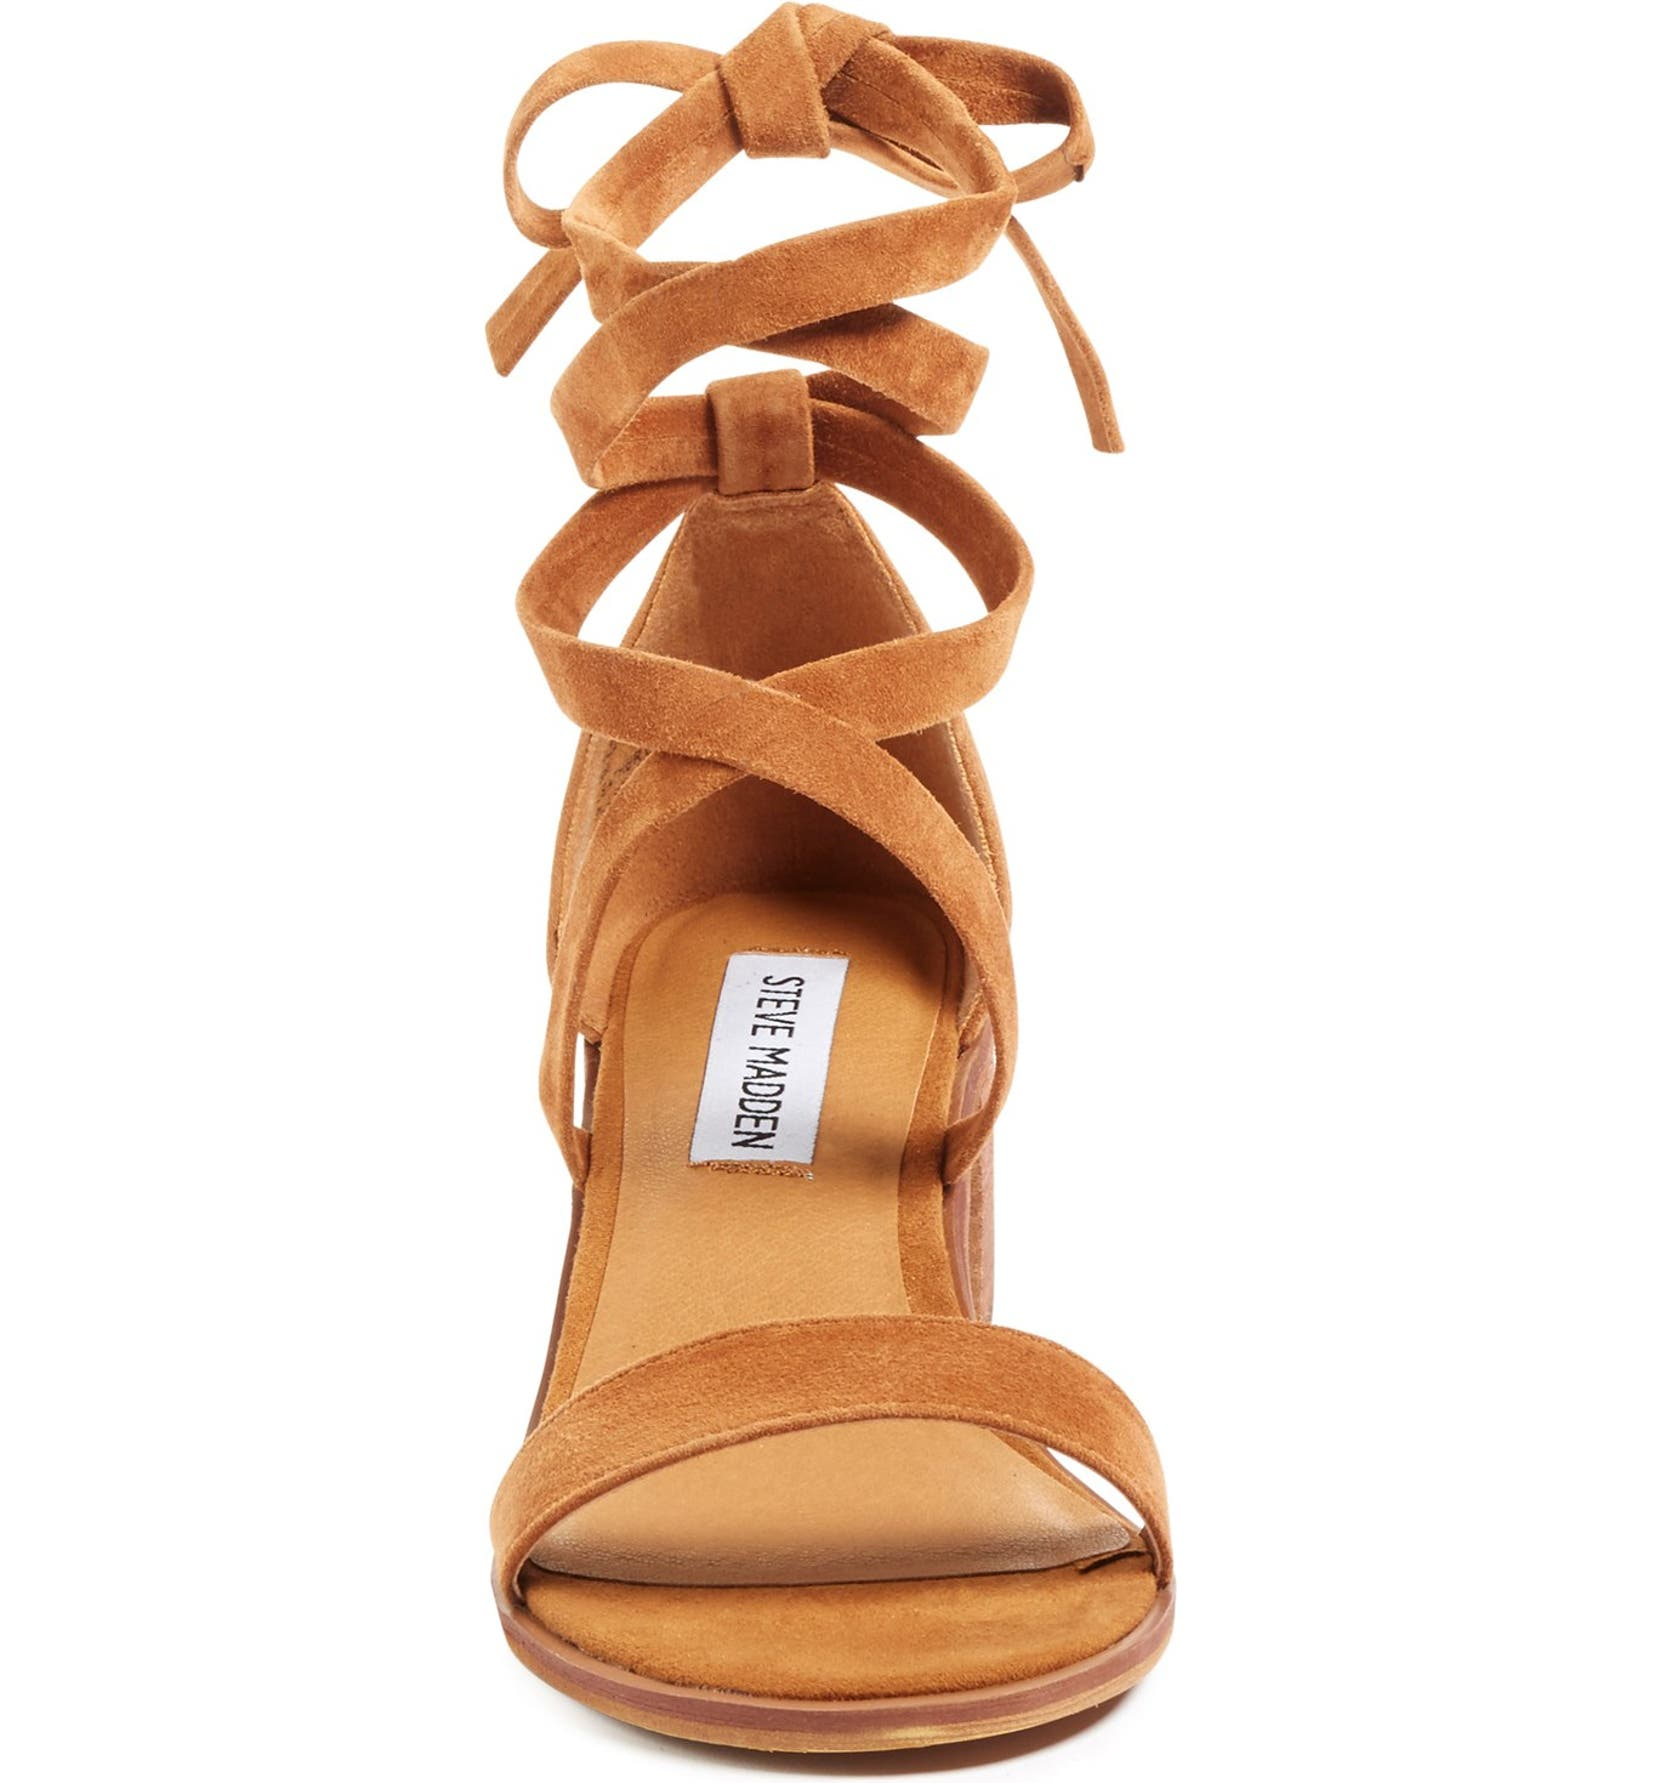 b890f3729a Steve Madden 'Rizzaa' Ankle Strap Sandal (Women) | Nordstrom